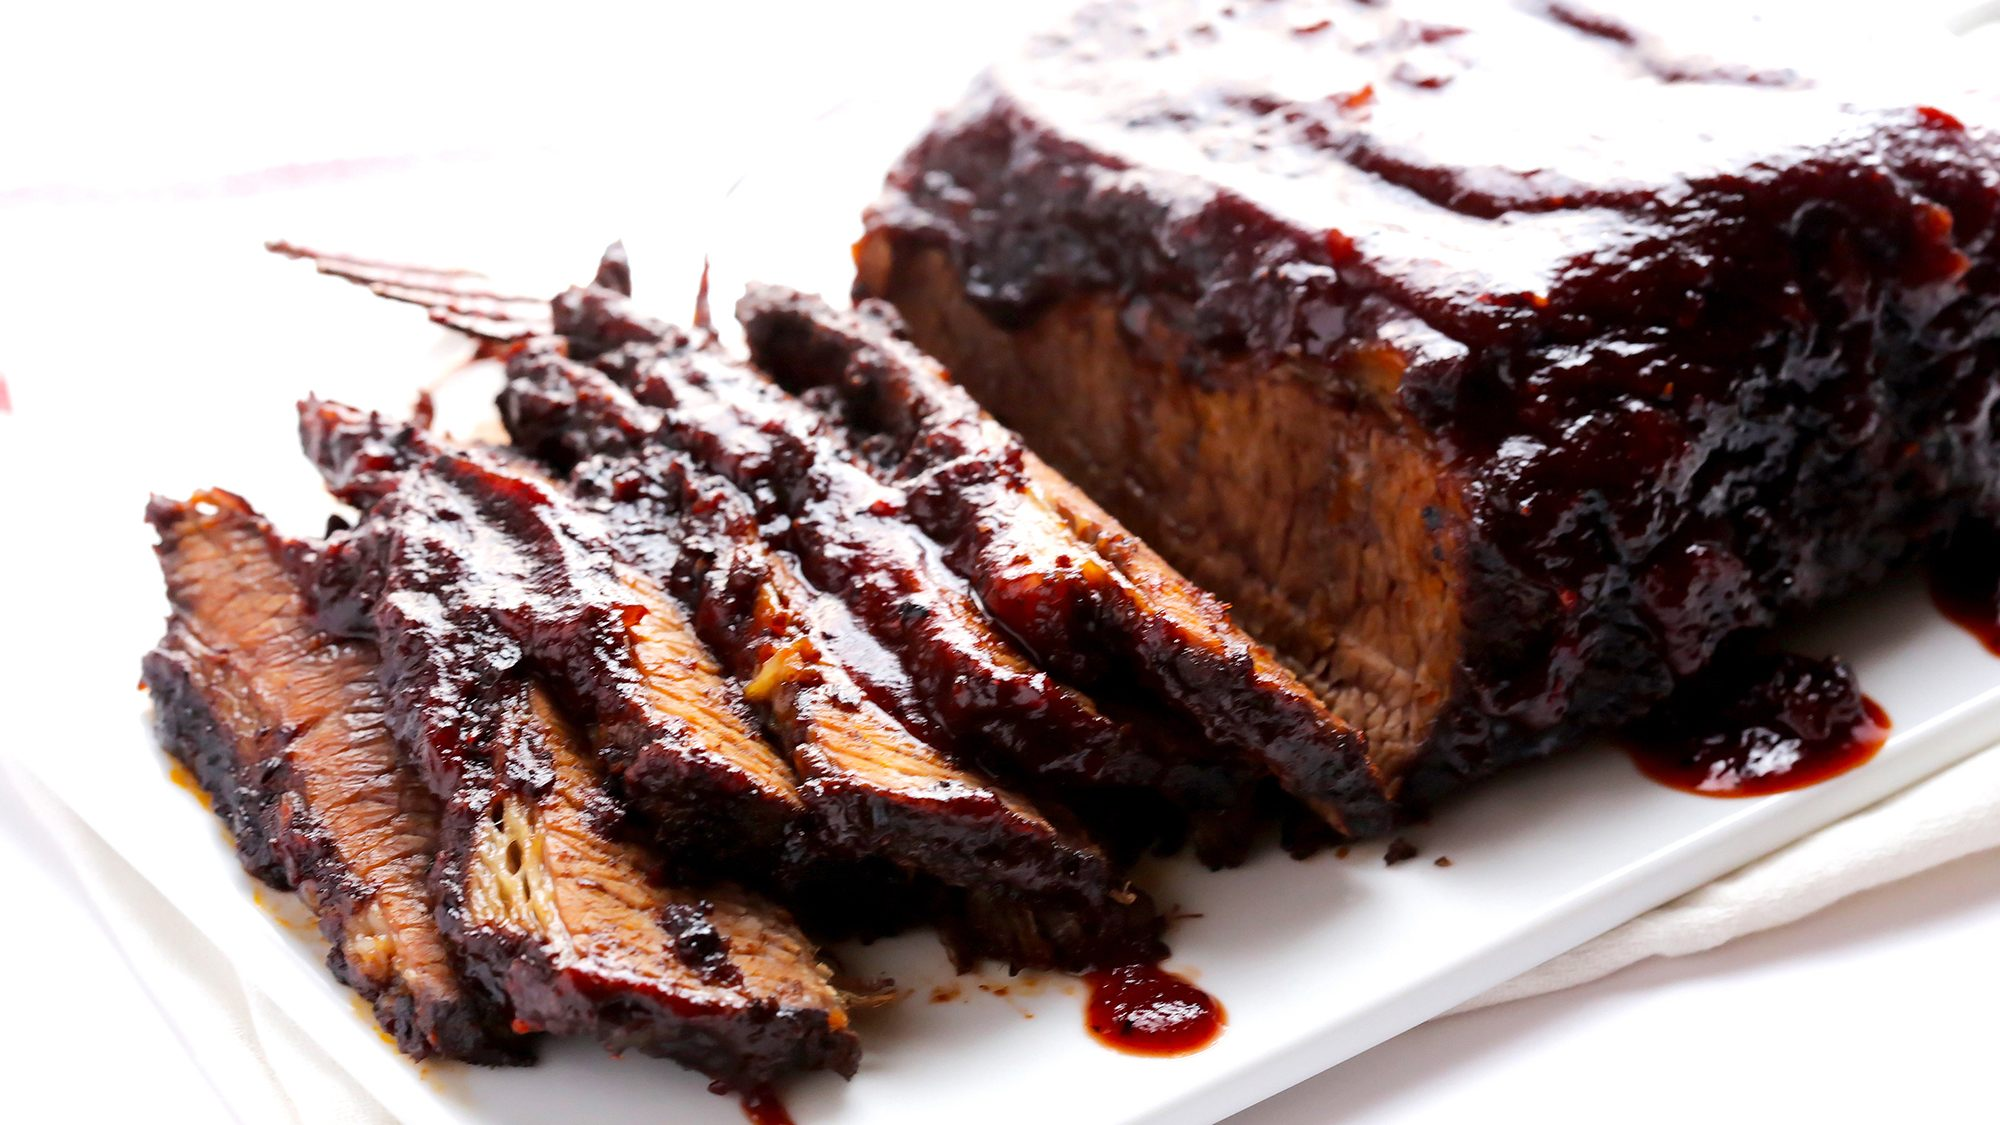 McCormick Gourmet Ancho Chile & Hibiscus BBQ Brisket